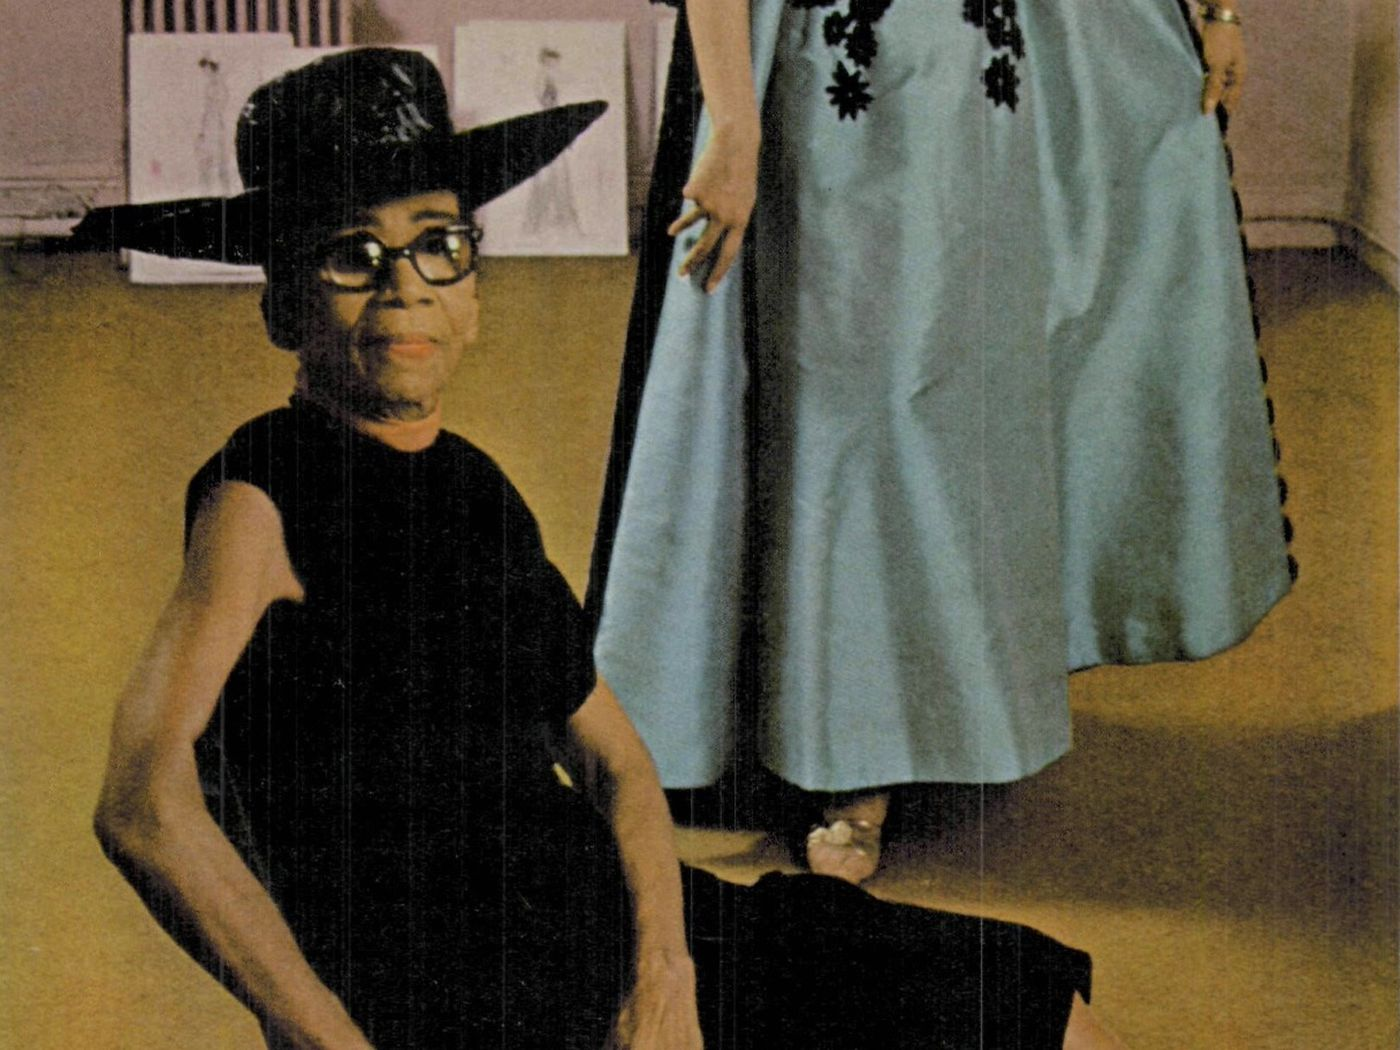 Ann Lowe How a LittleKnown Black Pioneer Changed Fashion Forever Racked